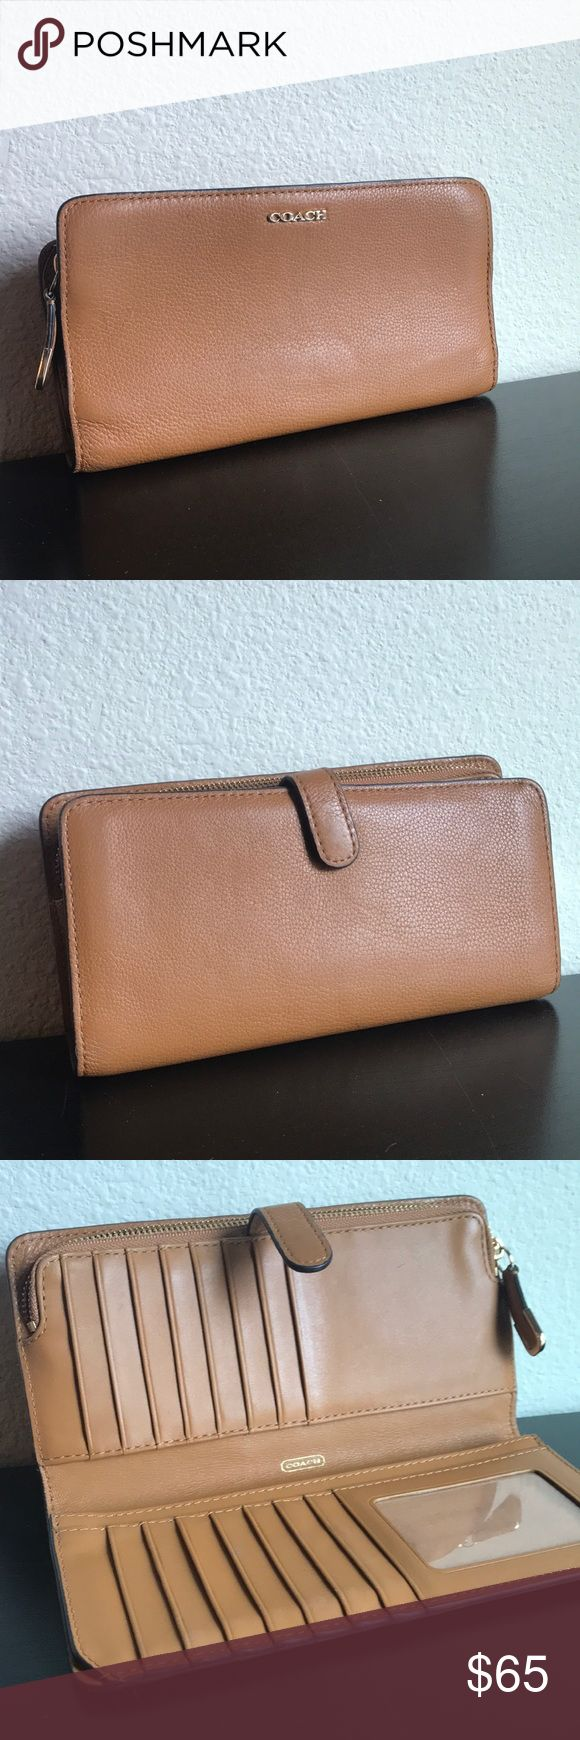 Coach Skinny Wallet Coach camel colored skinny wallet.  1 zip change pocket 3 full length bill compartments 1 ID slot 15 credit card slots Snap closure Coach Bags Wallets